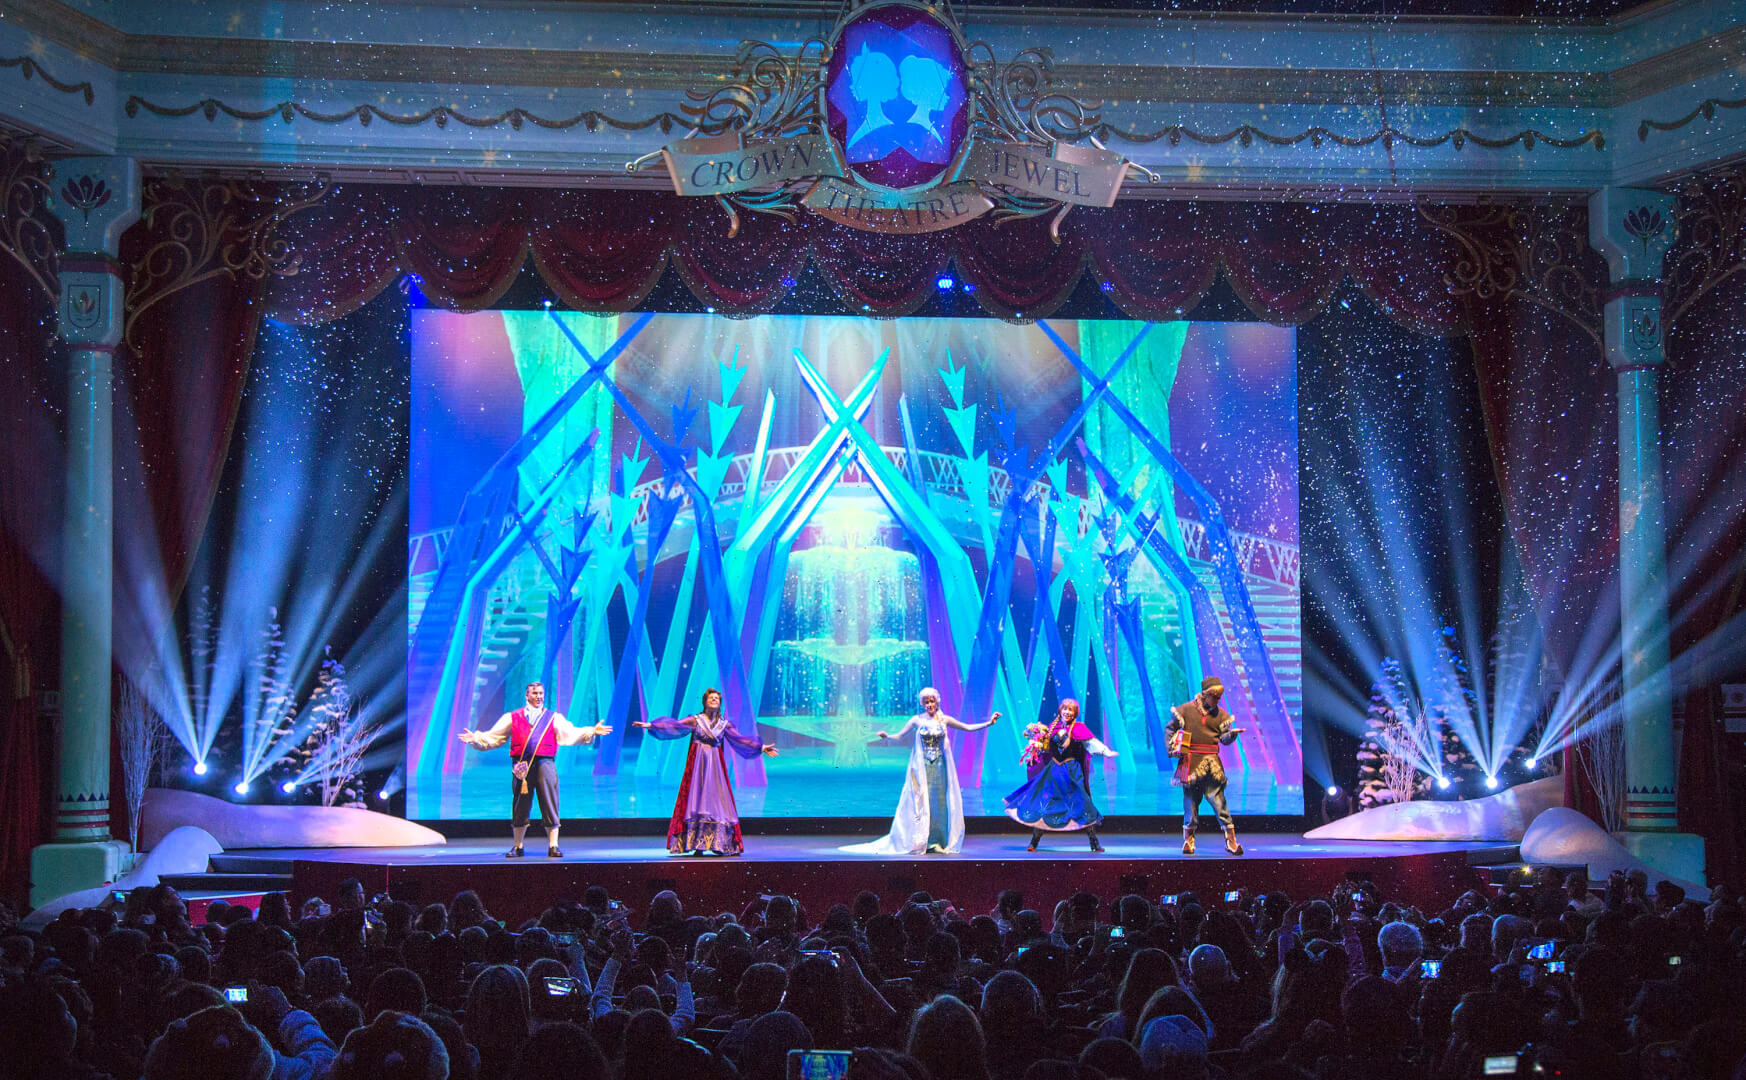 New Quot Frozen Quot Stage Show Debuts At Disneyland Featuring